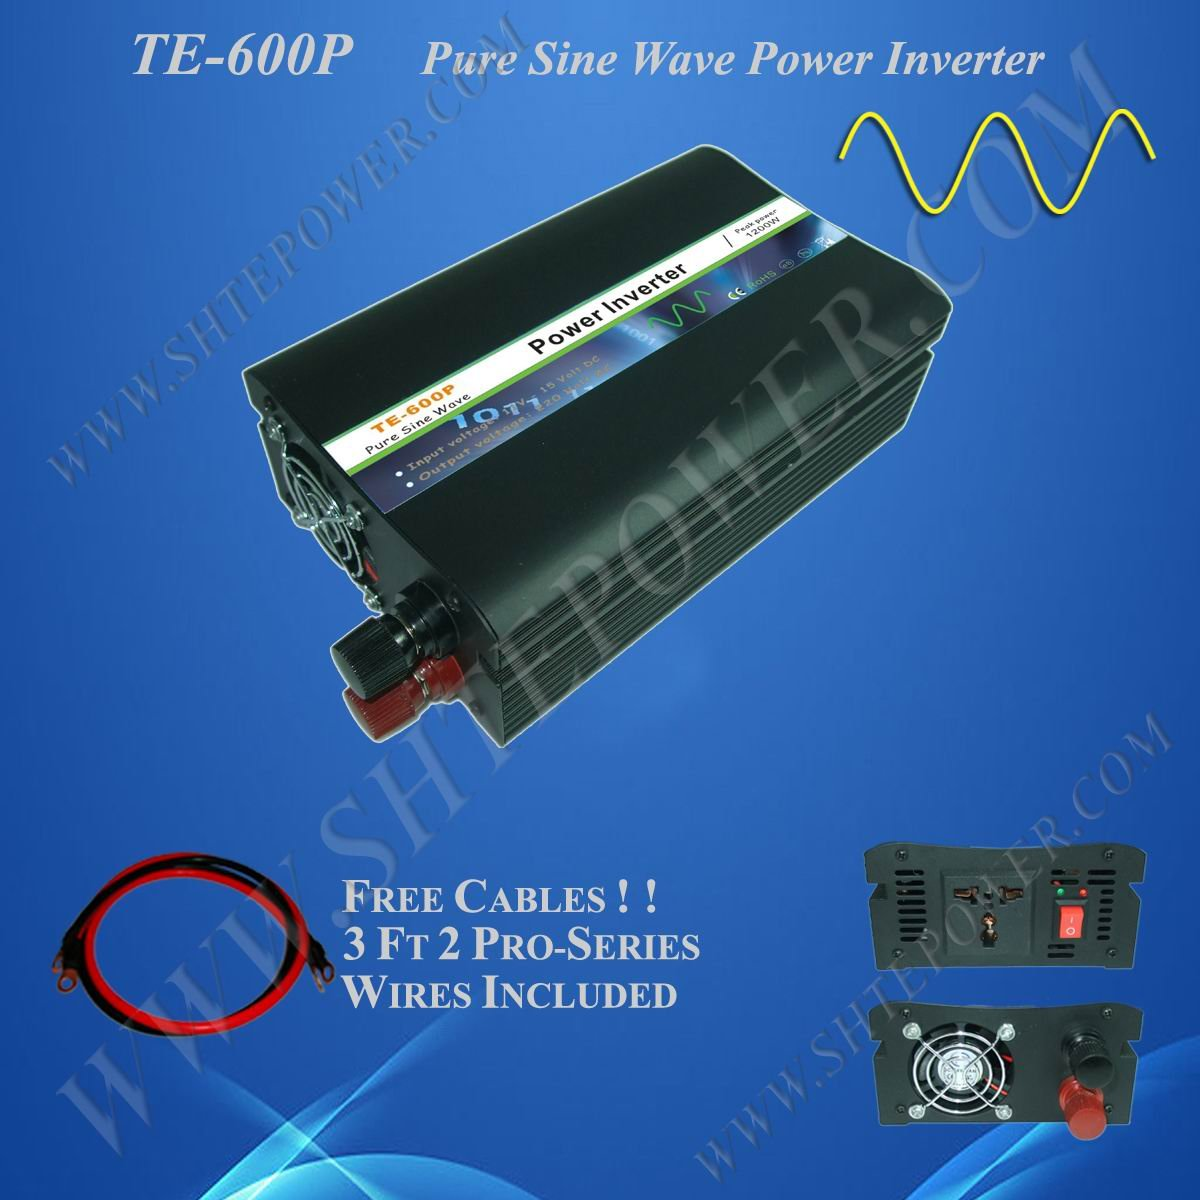 600w solar inverter, off grid inverter, DC 12/24v to AC 220v, pure sine wave power inverter, hot items